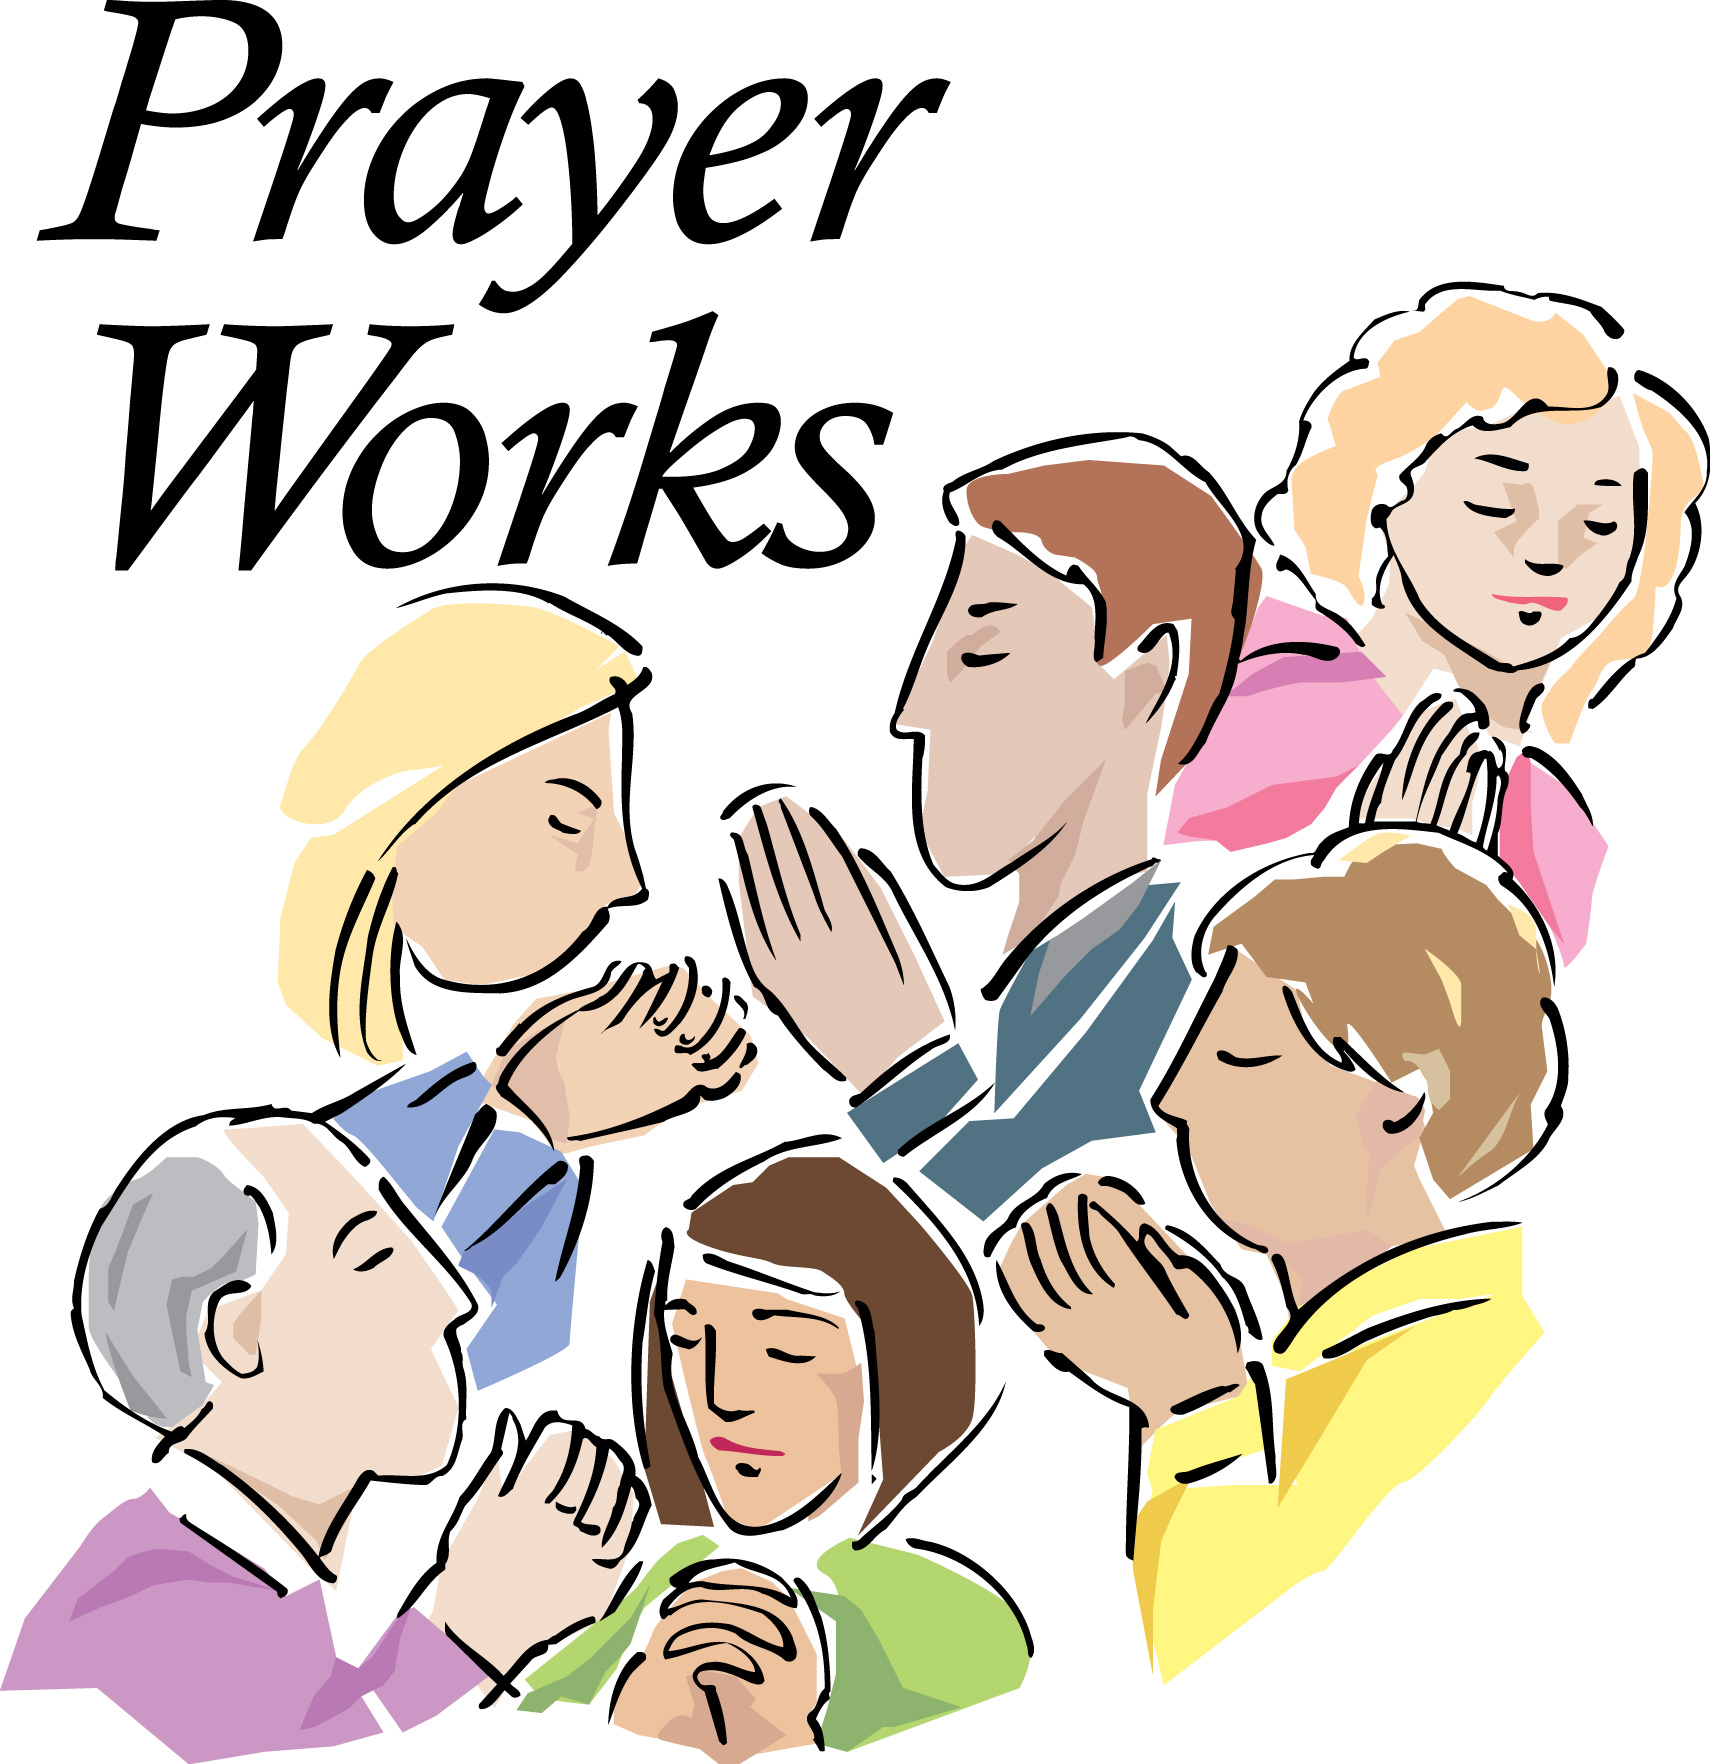 Free Please Pray Cliparts, Download Free Clip Art, Free Clip.